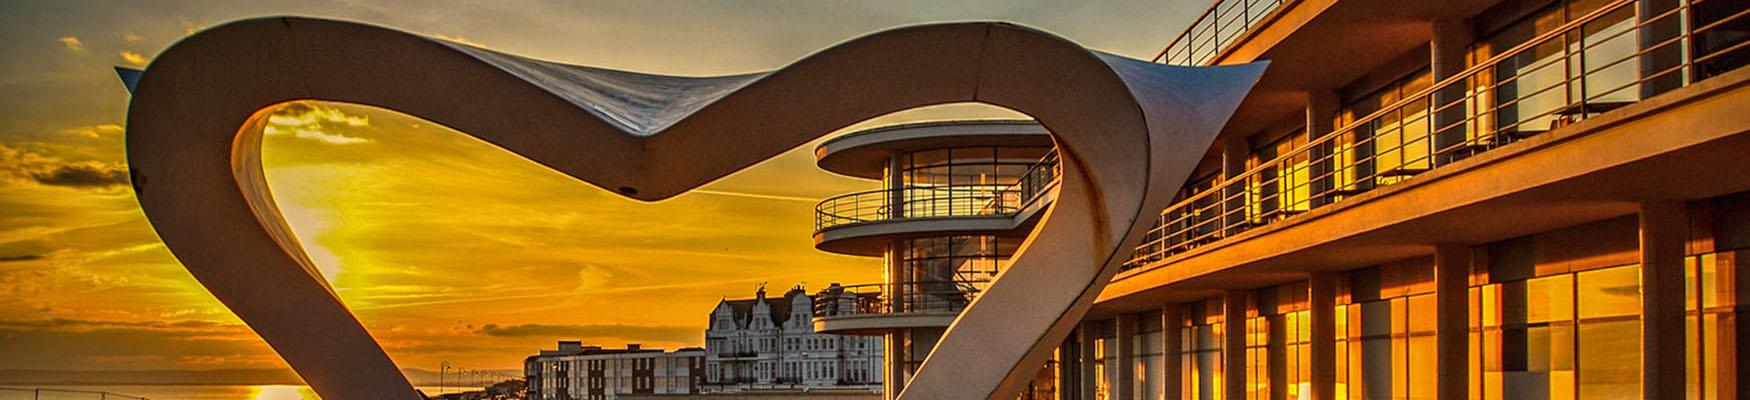 De La Warr at sunset seen through the artwork at the bandstand